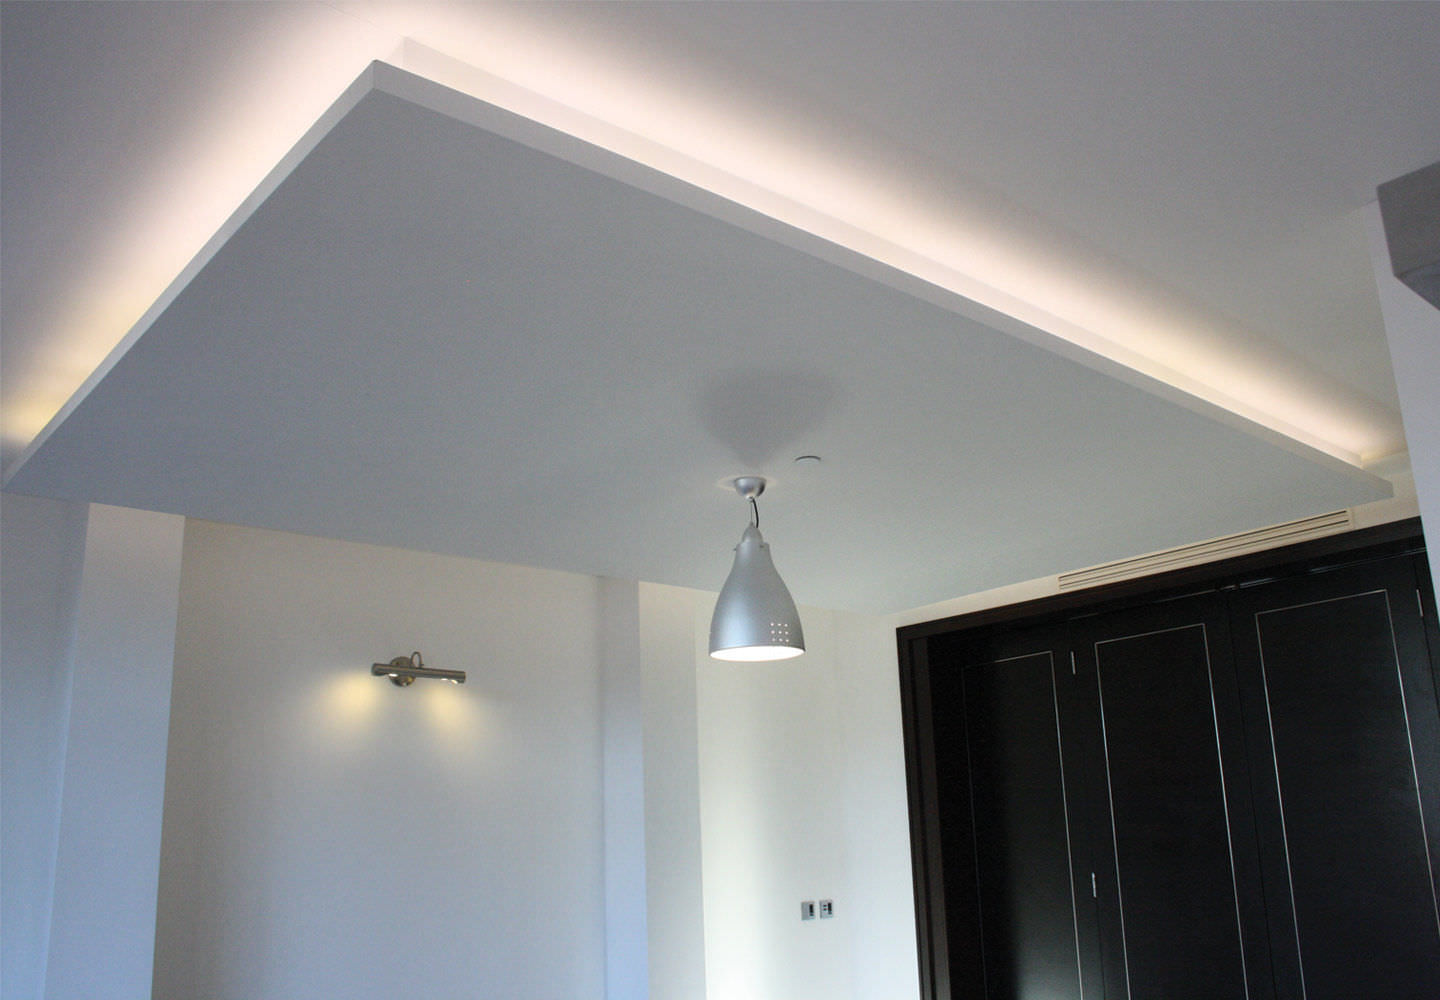 Eclairage Plafond Salon Luminaire Suspendu Moderne Suspension De Salon Maison Labarrere